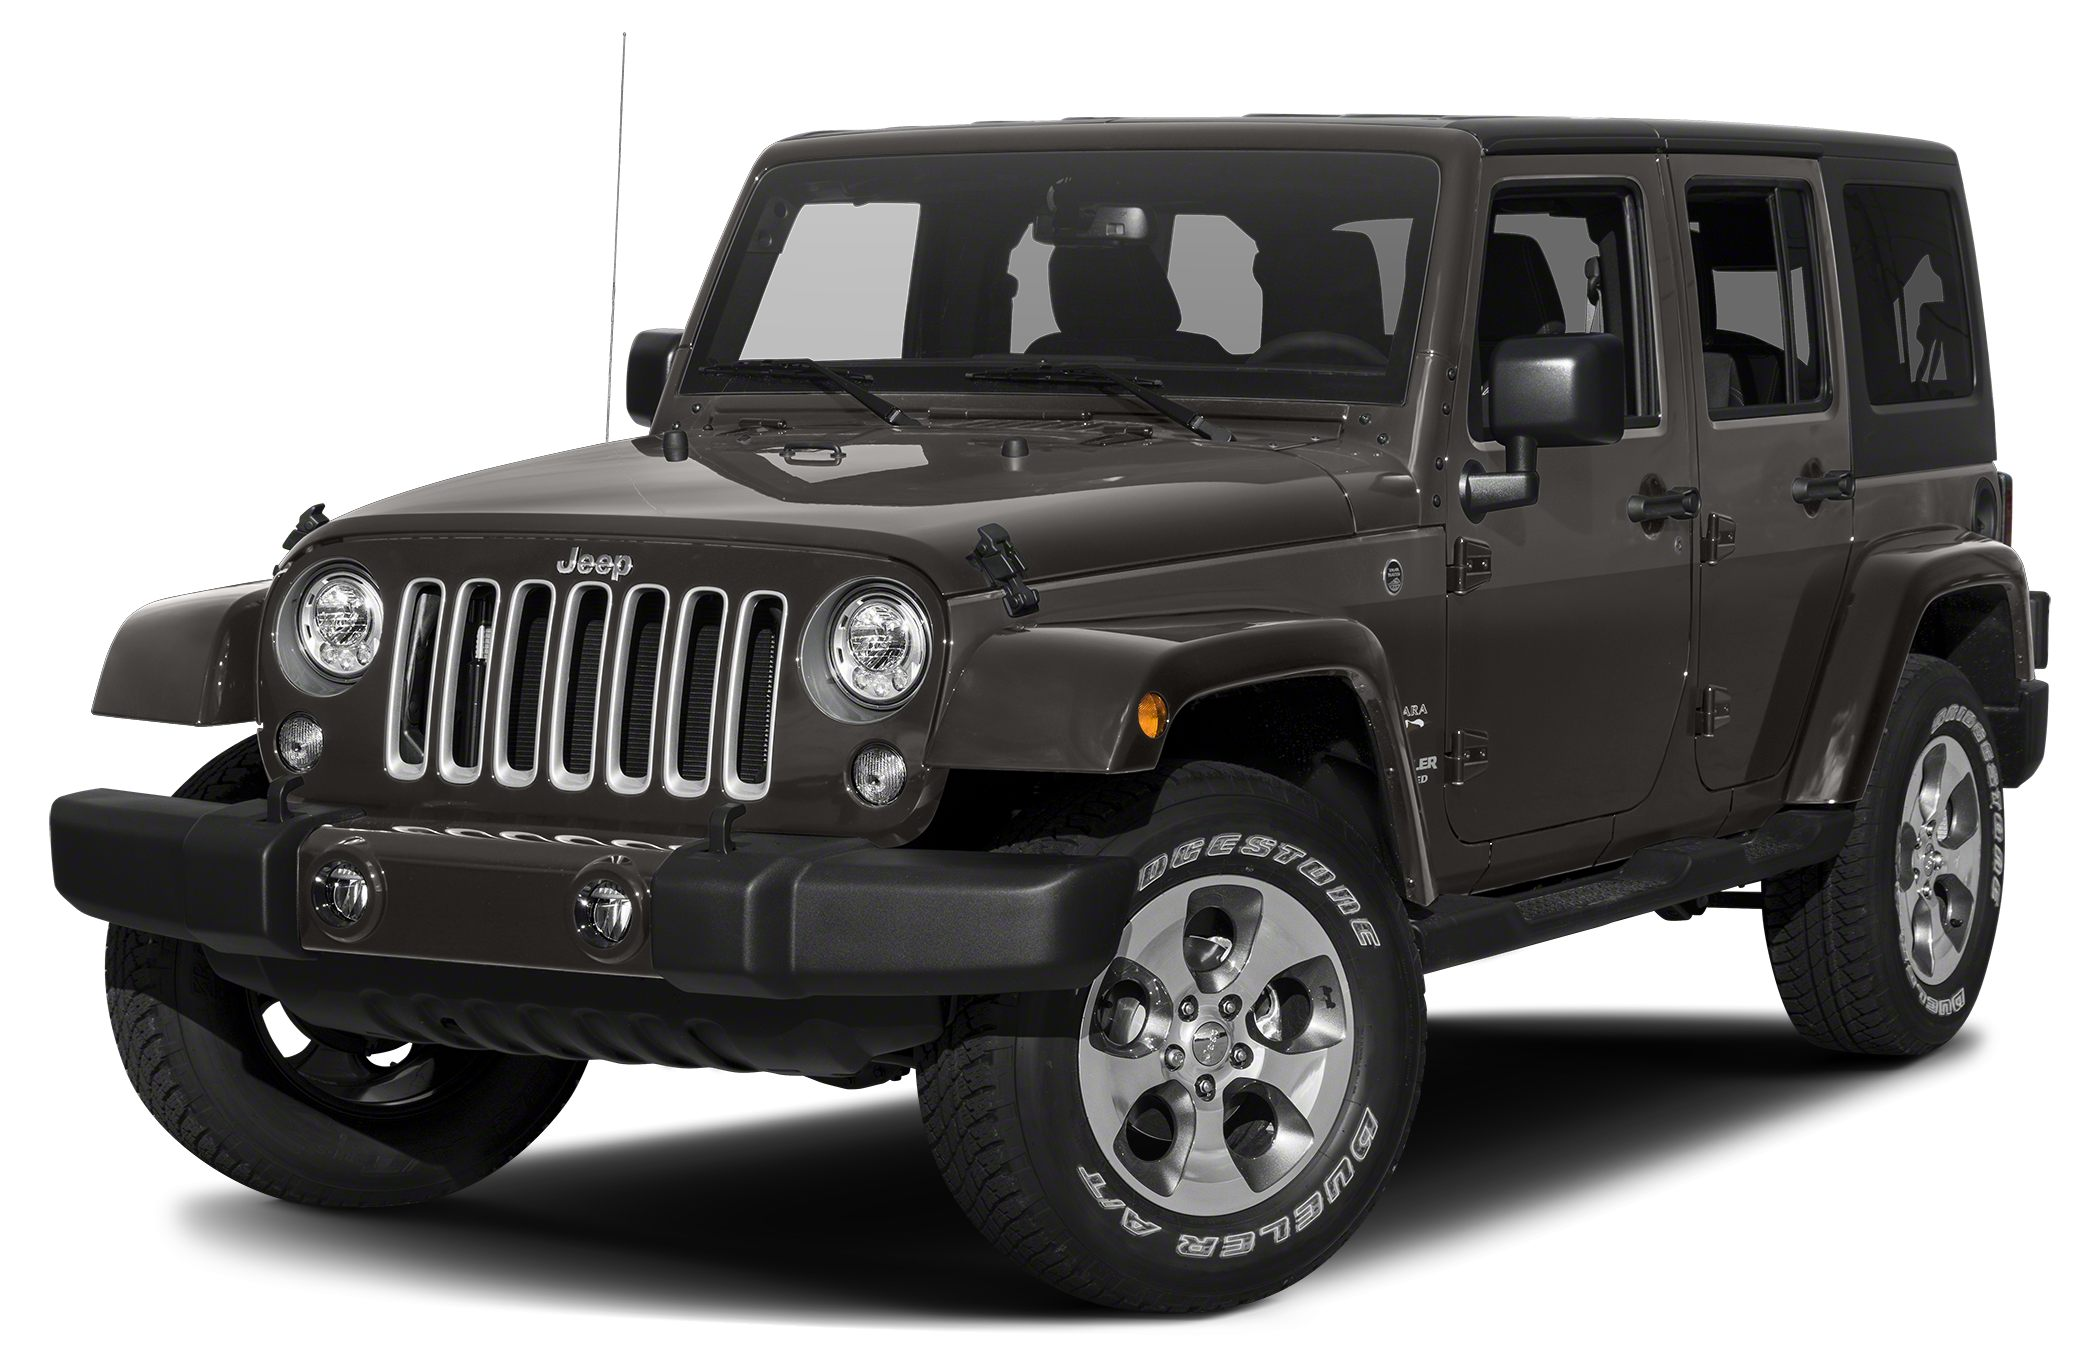 2017 Jeep Wrangler Unlimited Sahara 2017 Jeep Wrangler Unlimited Sahara in Crystal Metallic vehicl